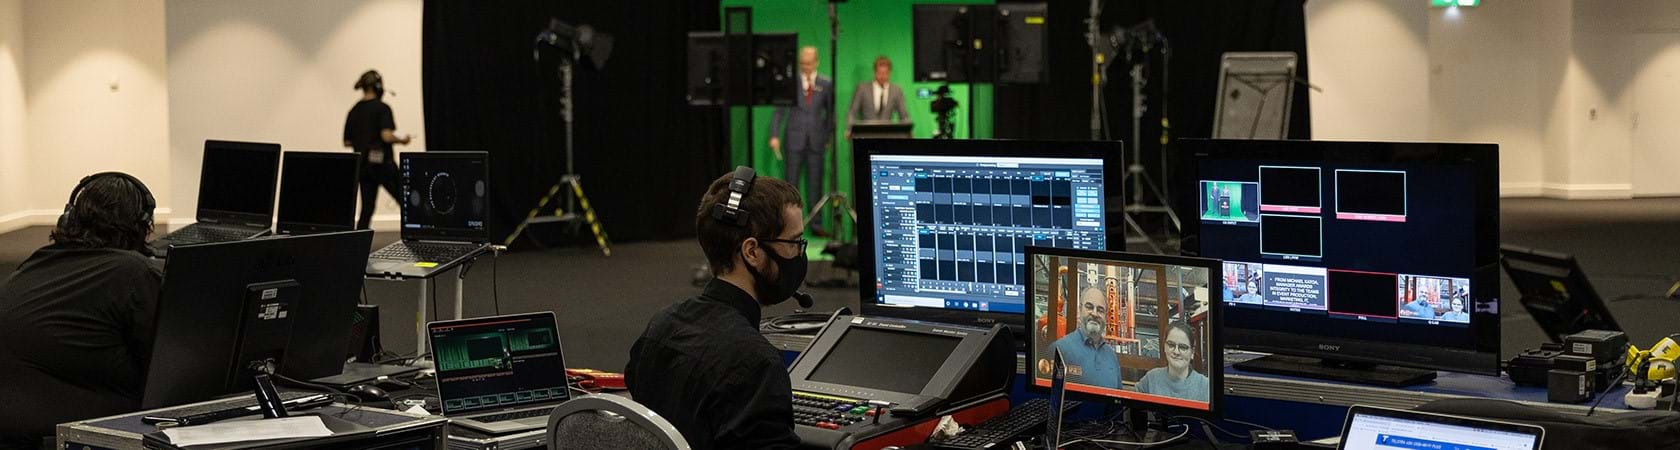 New broadcast quality virtual studio now available at Melbourne Showgrounds